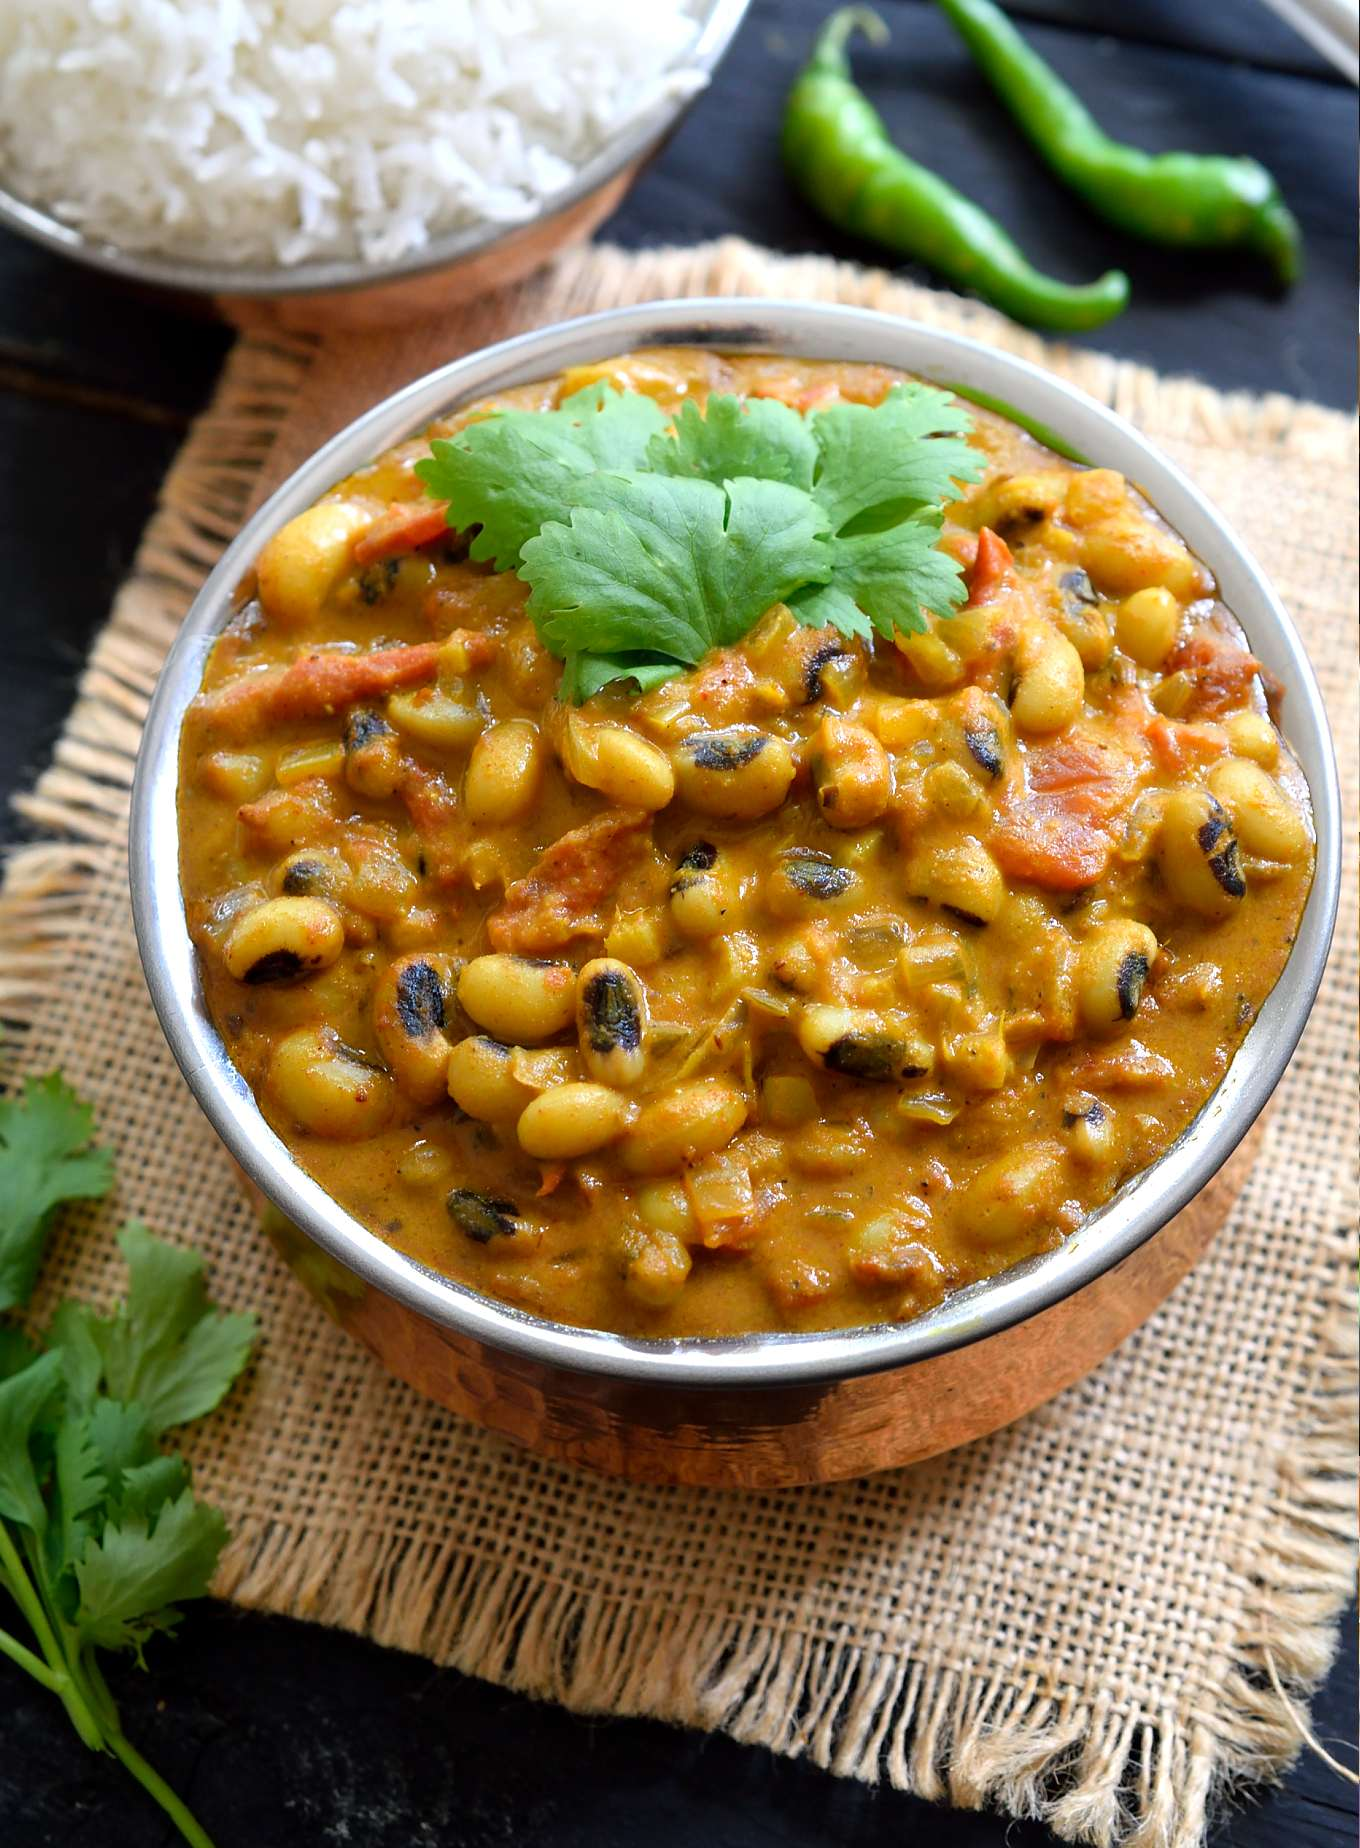 Curried vegetarian black eyed peas recipe cilantro and citronella this curried vegetarian black eyed peas recipe is an easy to prepare lightly forumfinder Images